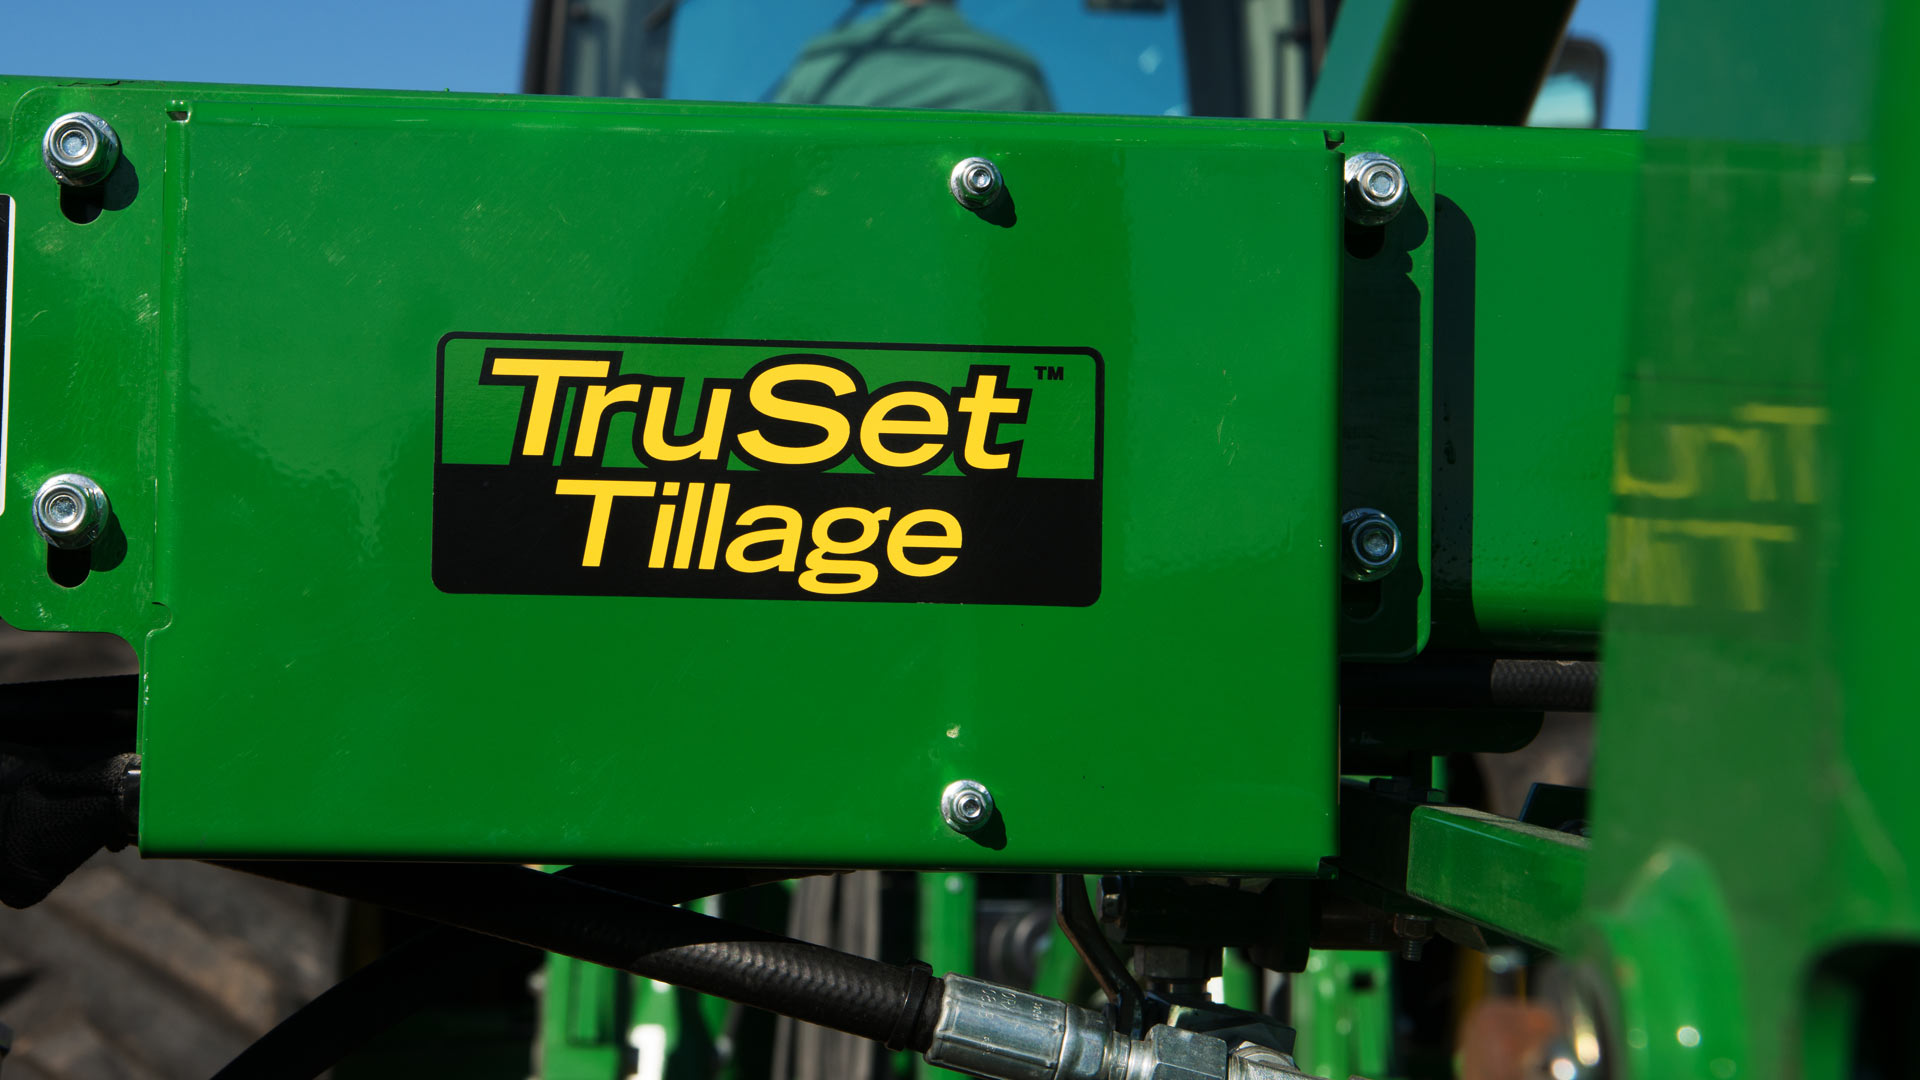 truset tillage technology